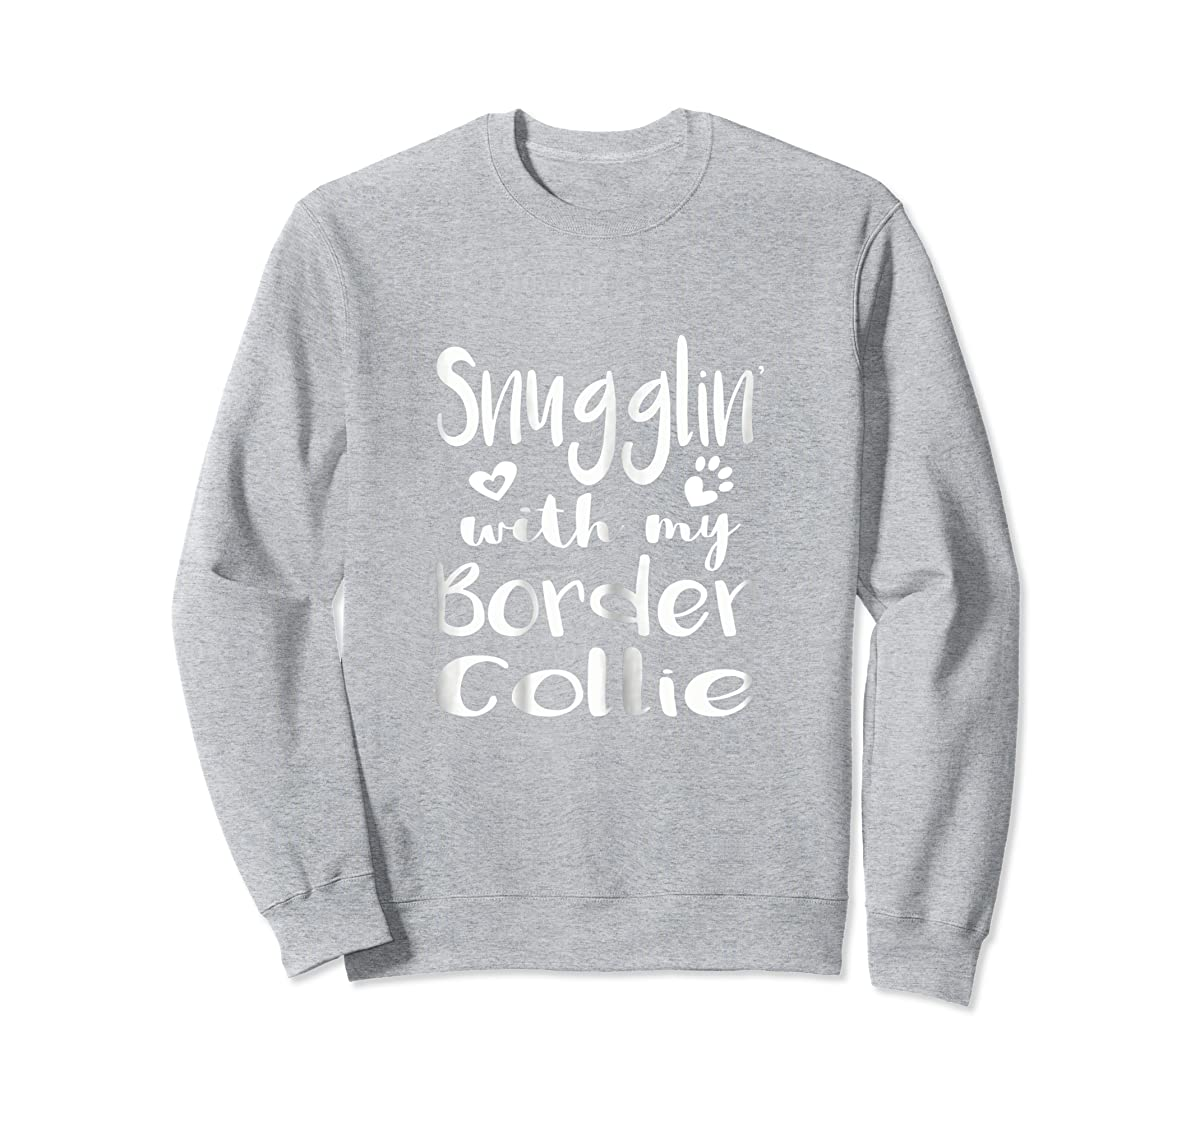 Snuggling with my Border Collie Shirt - Dog Mom pajamas-Sweatshirt-Sport Grey